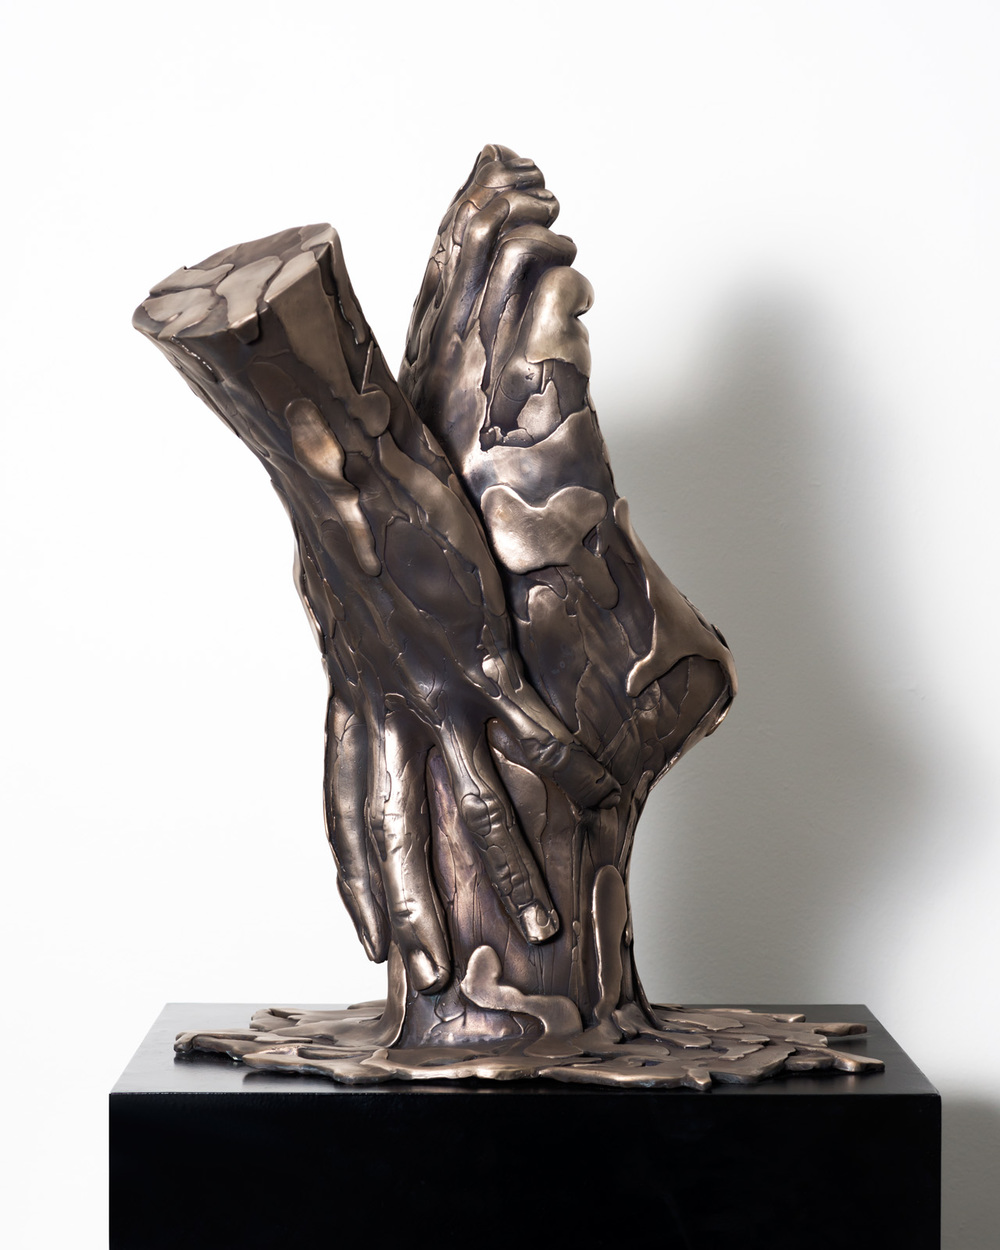 Hand and Foot, 2014